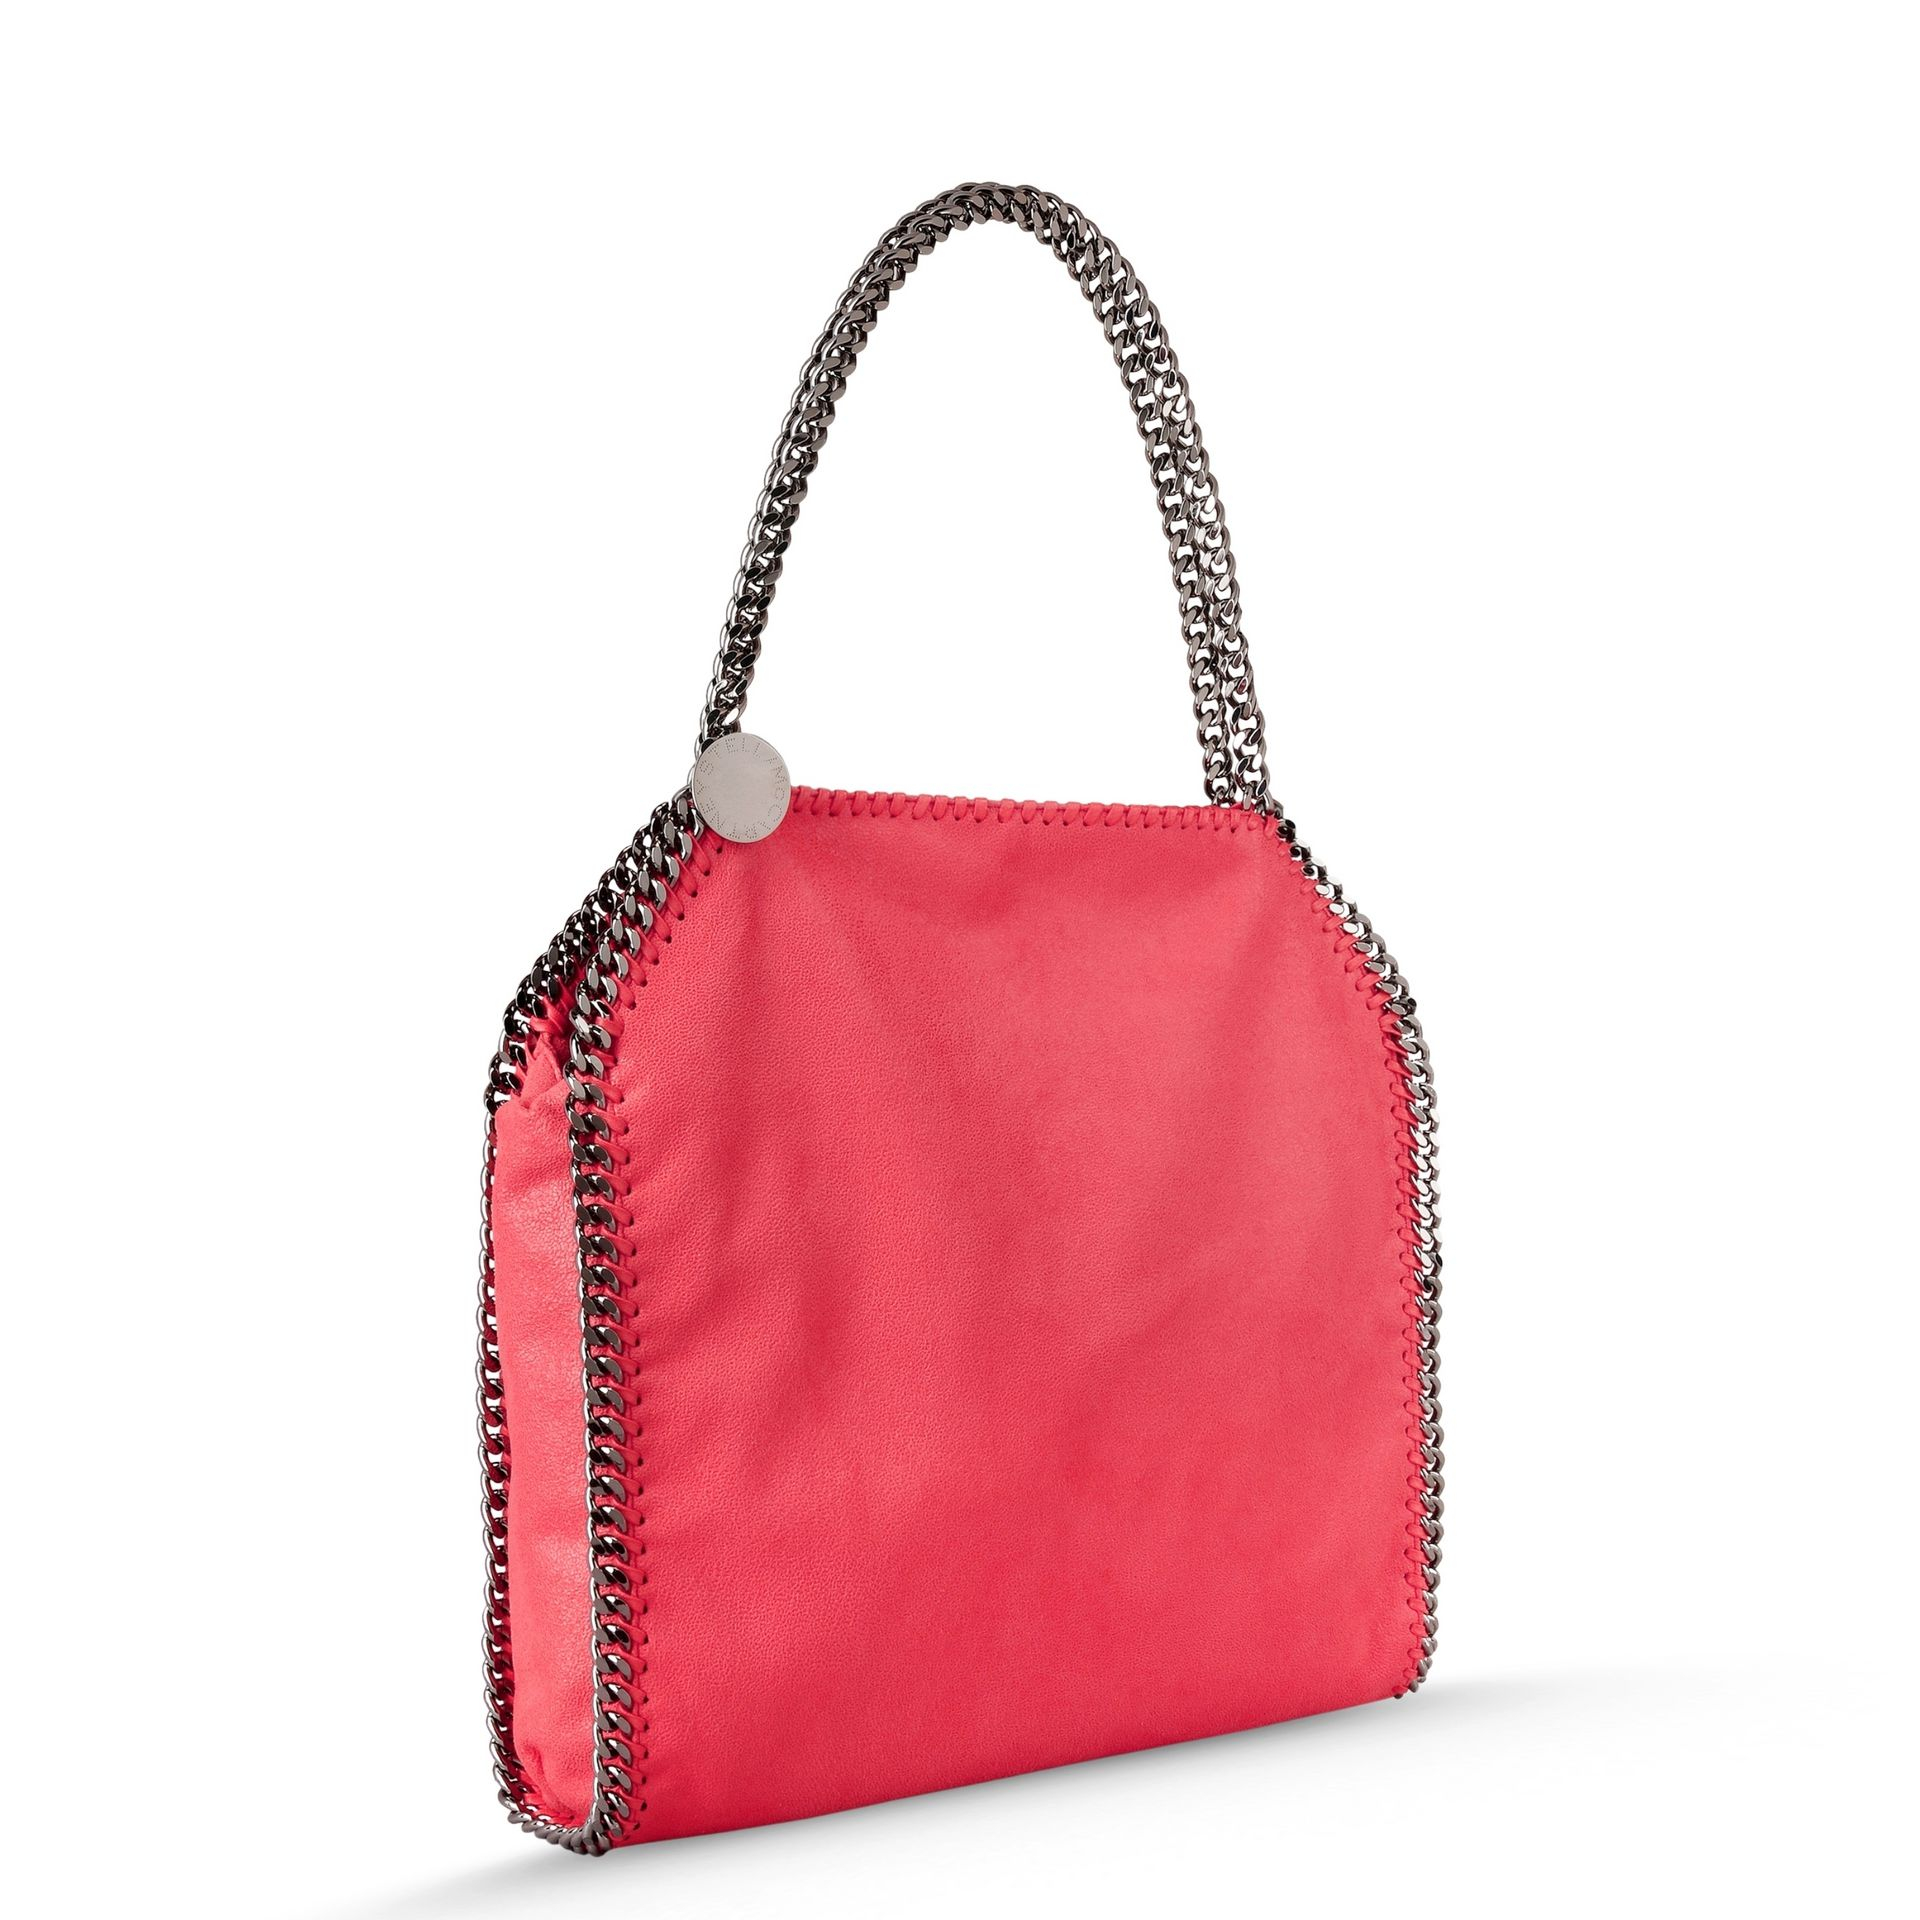 33c07aba7c0ce Lyst - Stella McCartney Pink Fluo Falabella Shaggy Deer Small Tote ...